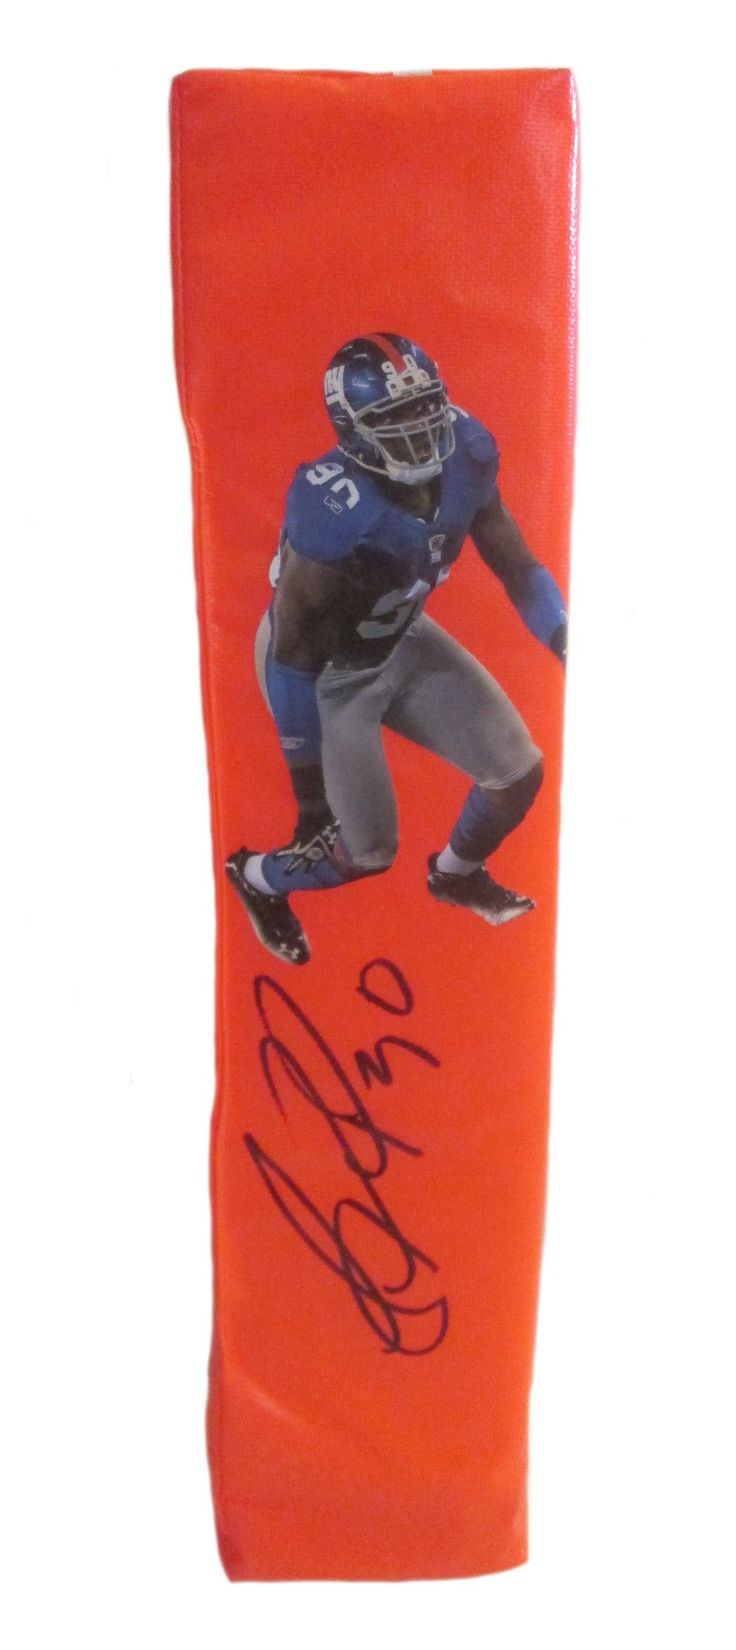 Jason Pierre-Paul signed NY Giants full size football touchdown end zone pylon w/ proof photo.  Proof photo of JPP signing will be included with your purchase along with a COA issued from Southwestconnection-Memorabilia, guaranteeing the item to pass authentication services from PSA/DNA or JSA. Free USPS shipping. www.AutographedwithProof.com is your one stop for autographed collectibles from New York sports teams. Check back with us often, as we are always obtaining new items.